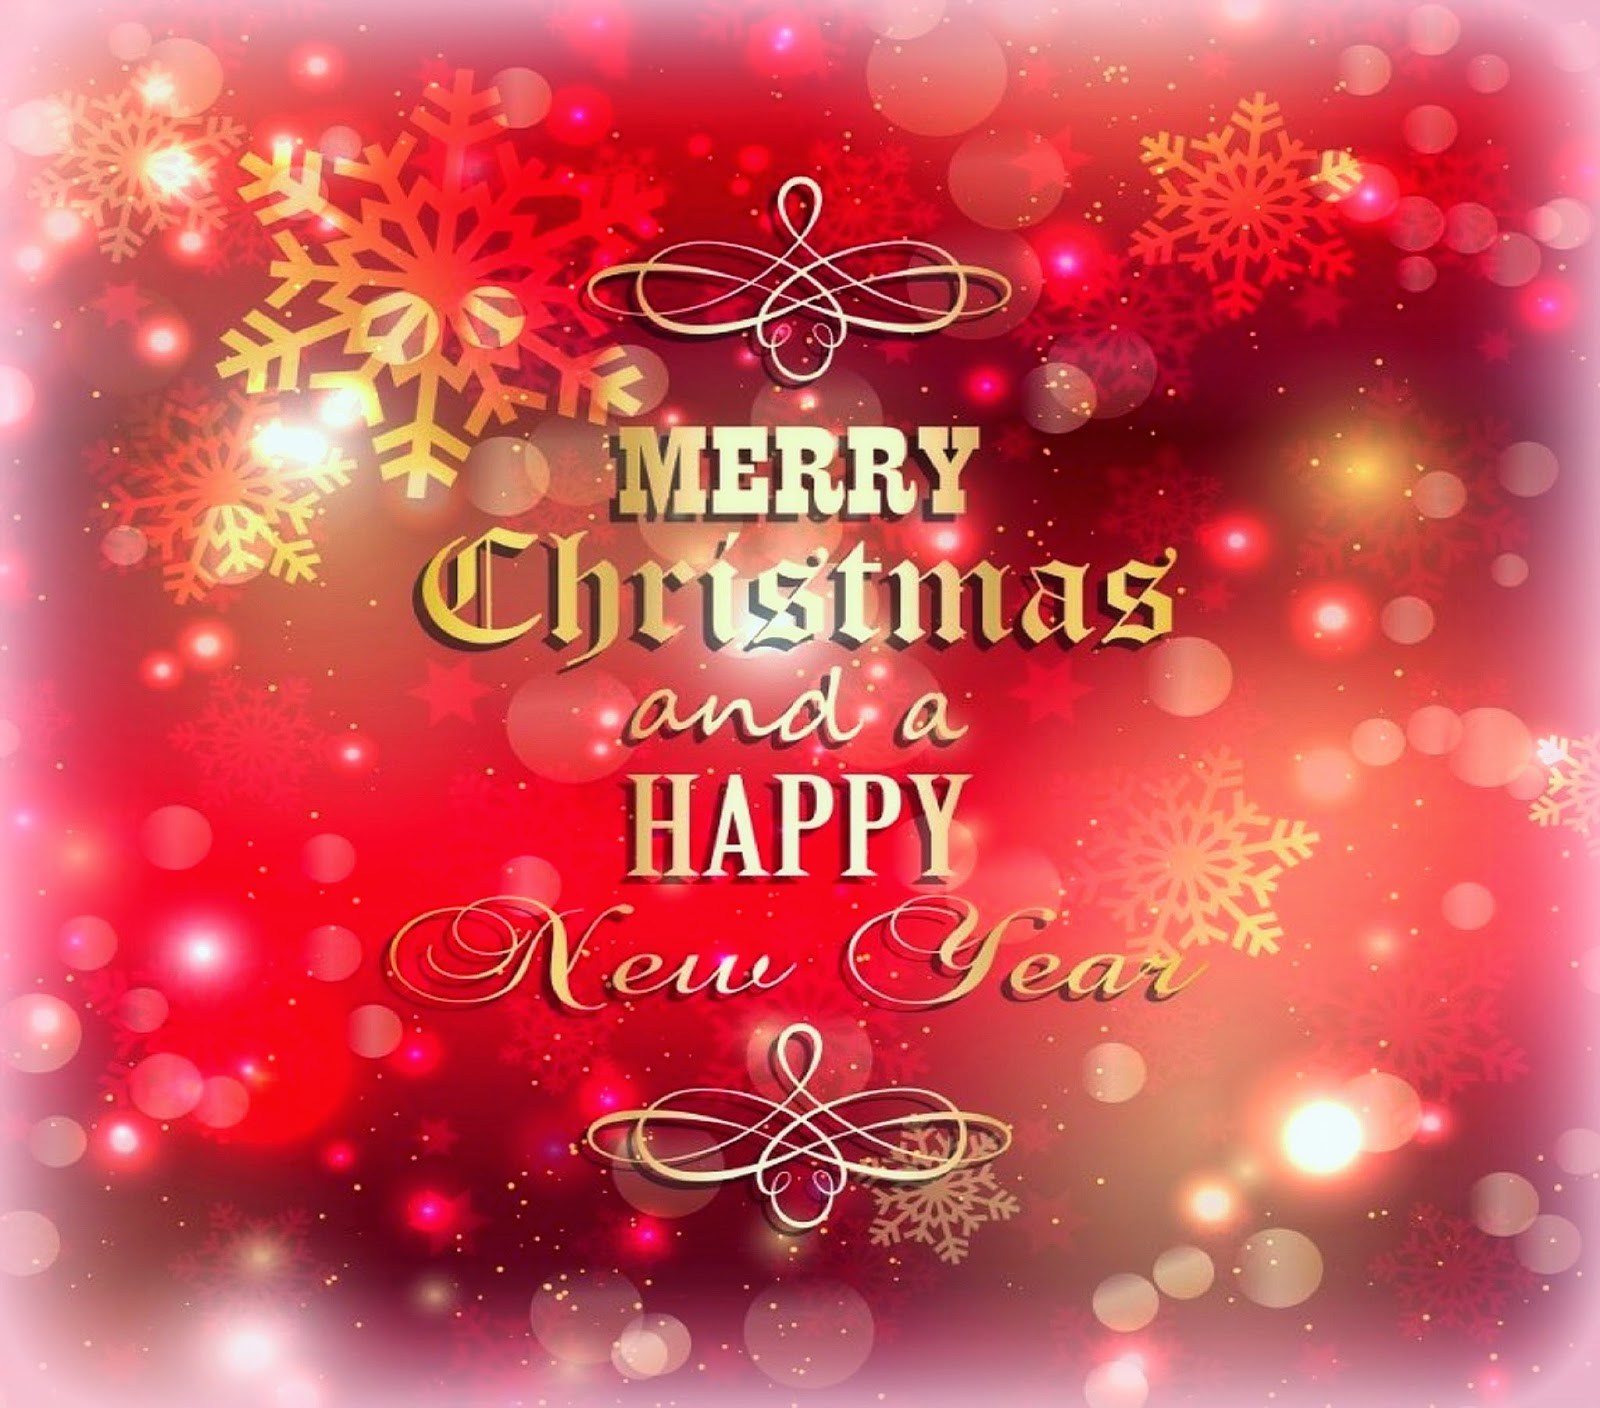 christmas-greetings-vector-graphics-red-background-hd-wallpaper.jpg